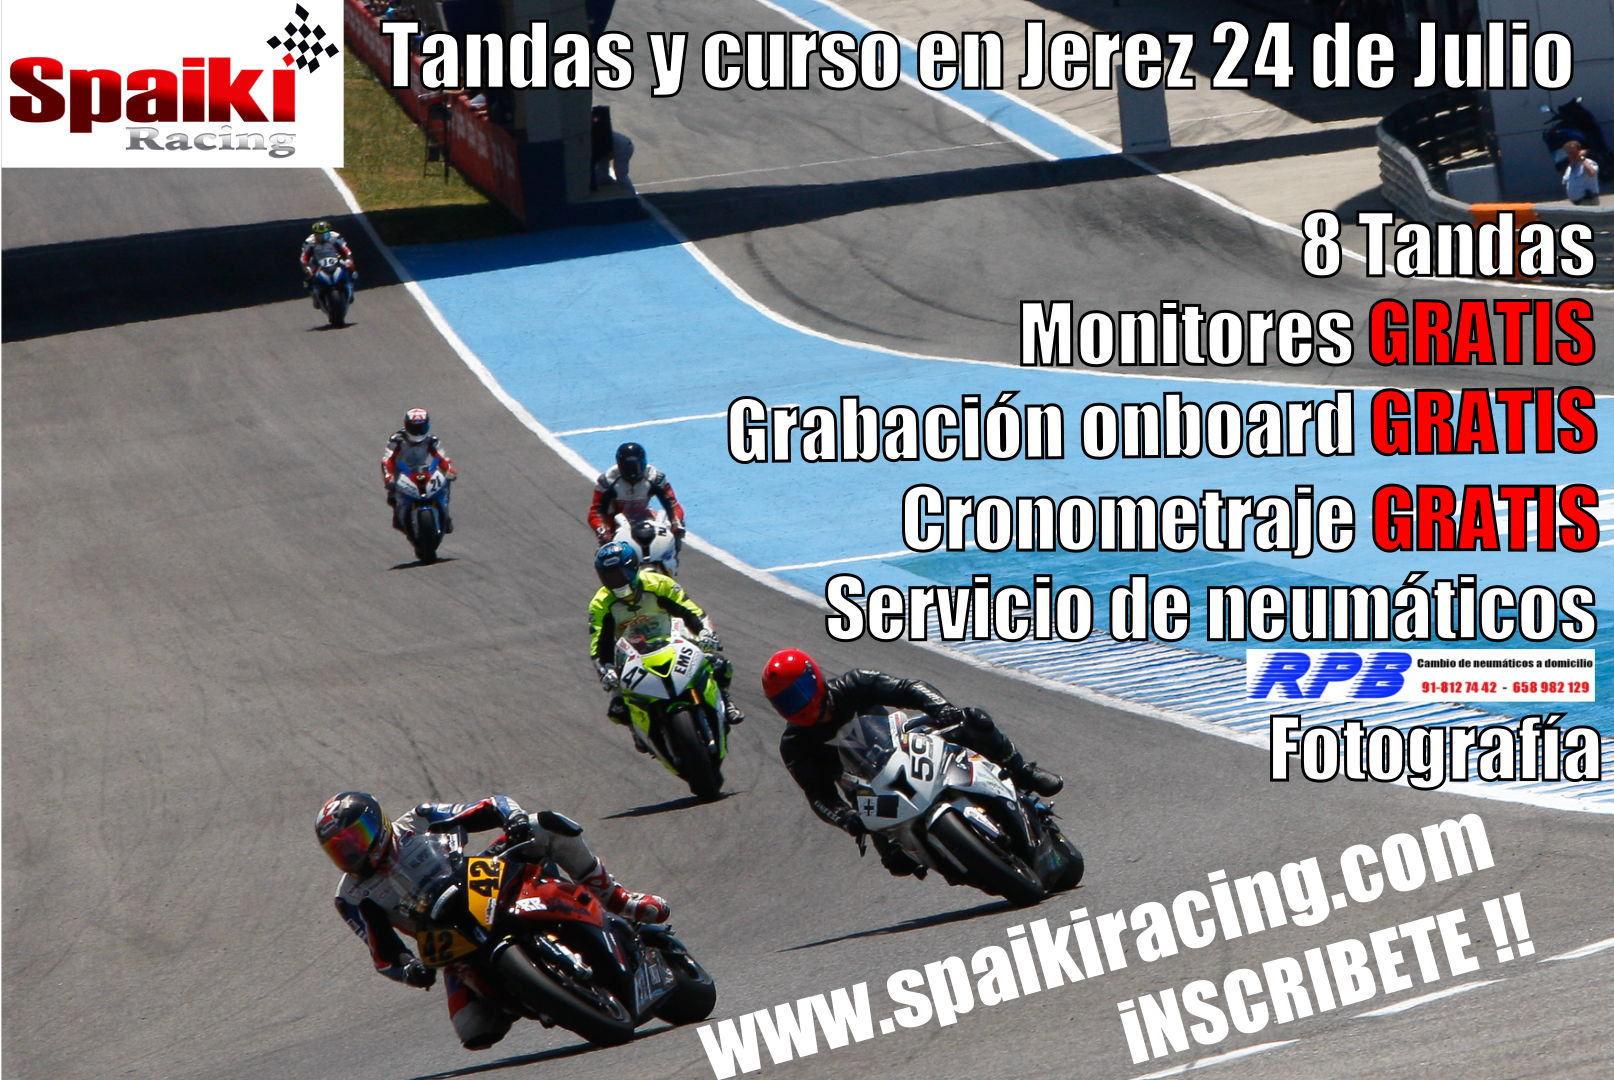 Cartel Spaiki Racing Jerez